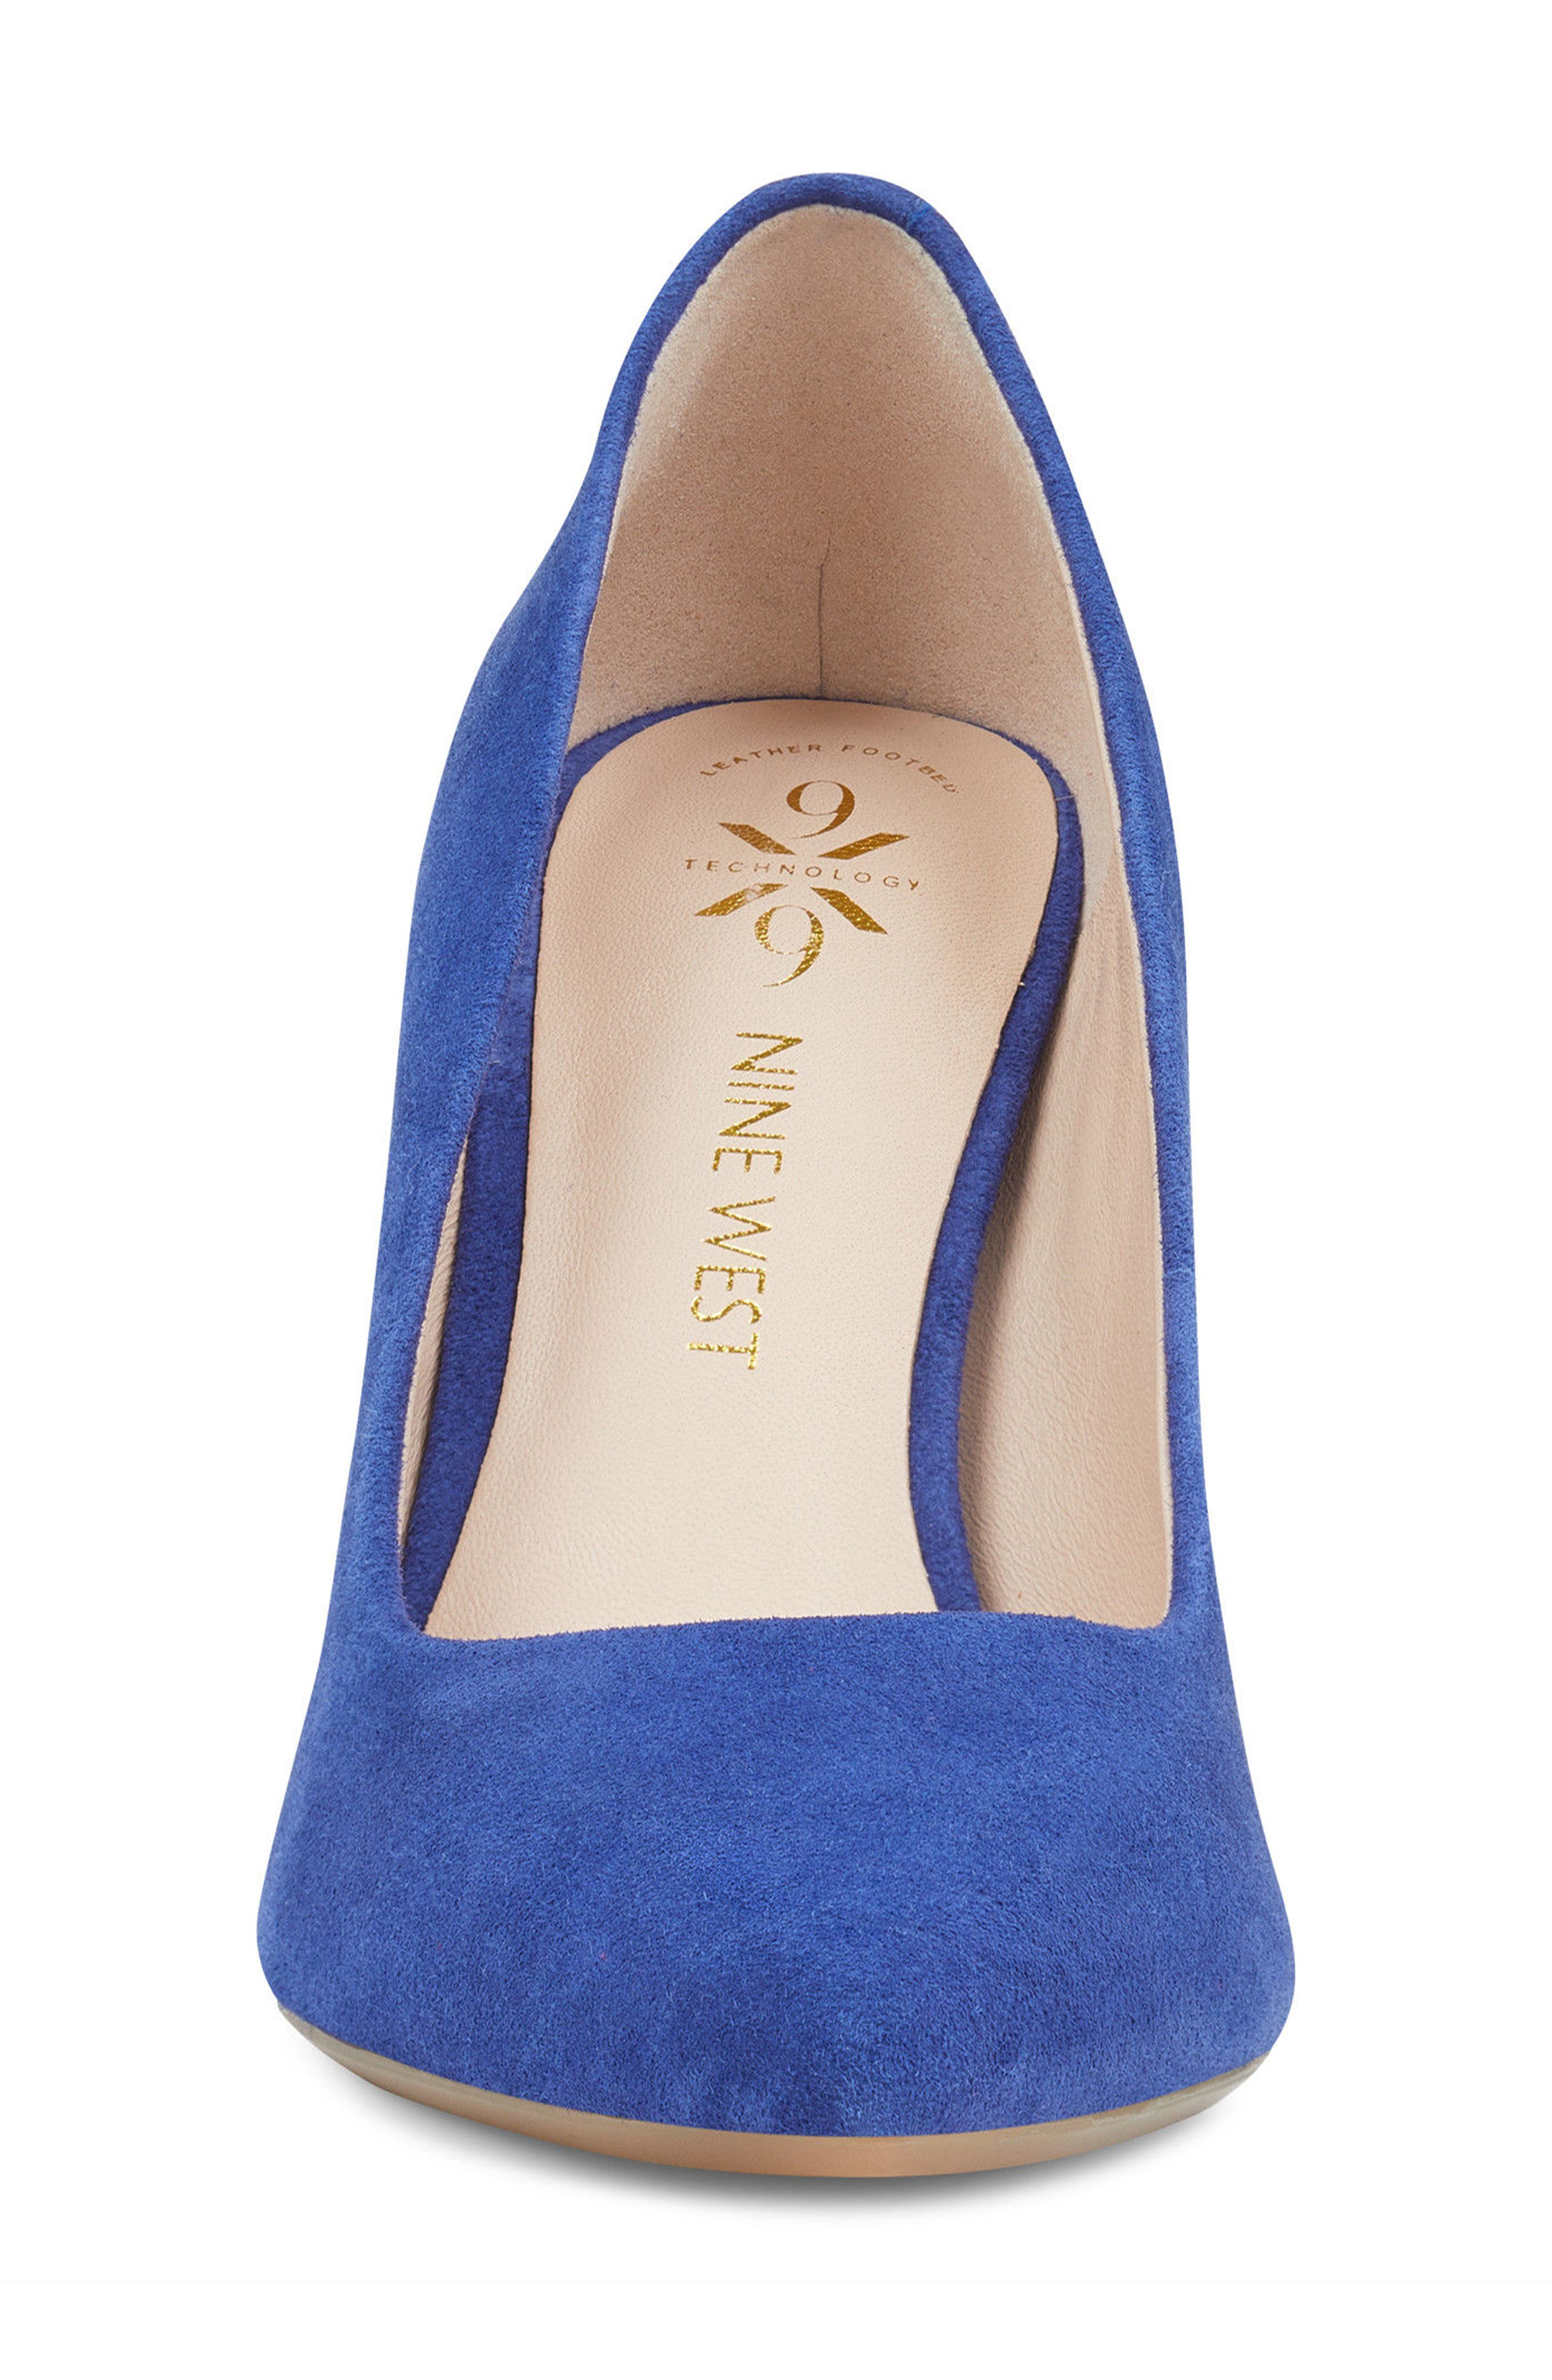 Astoria Pump,                             Alternate thumbnail 4, color,                             DARK BLUE SUEDE